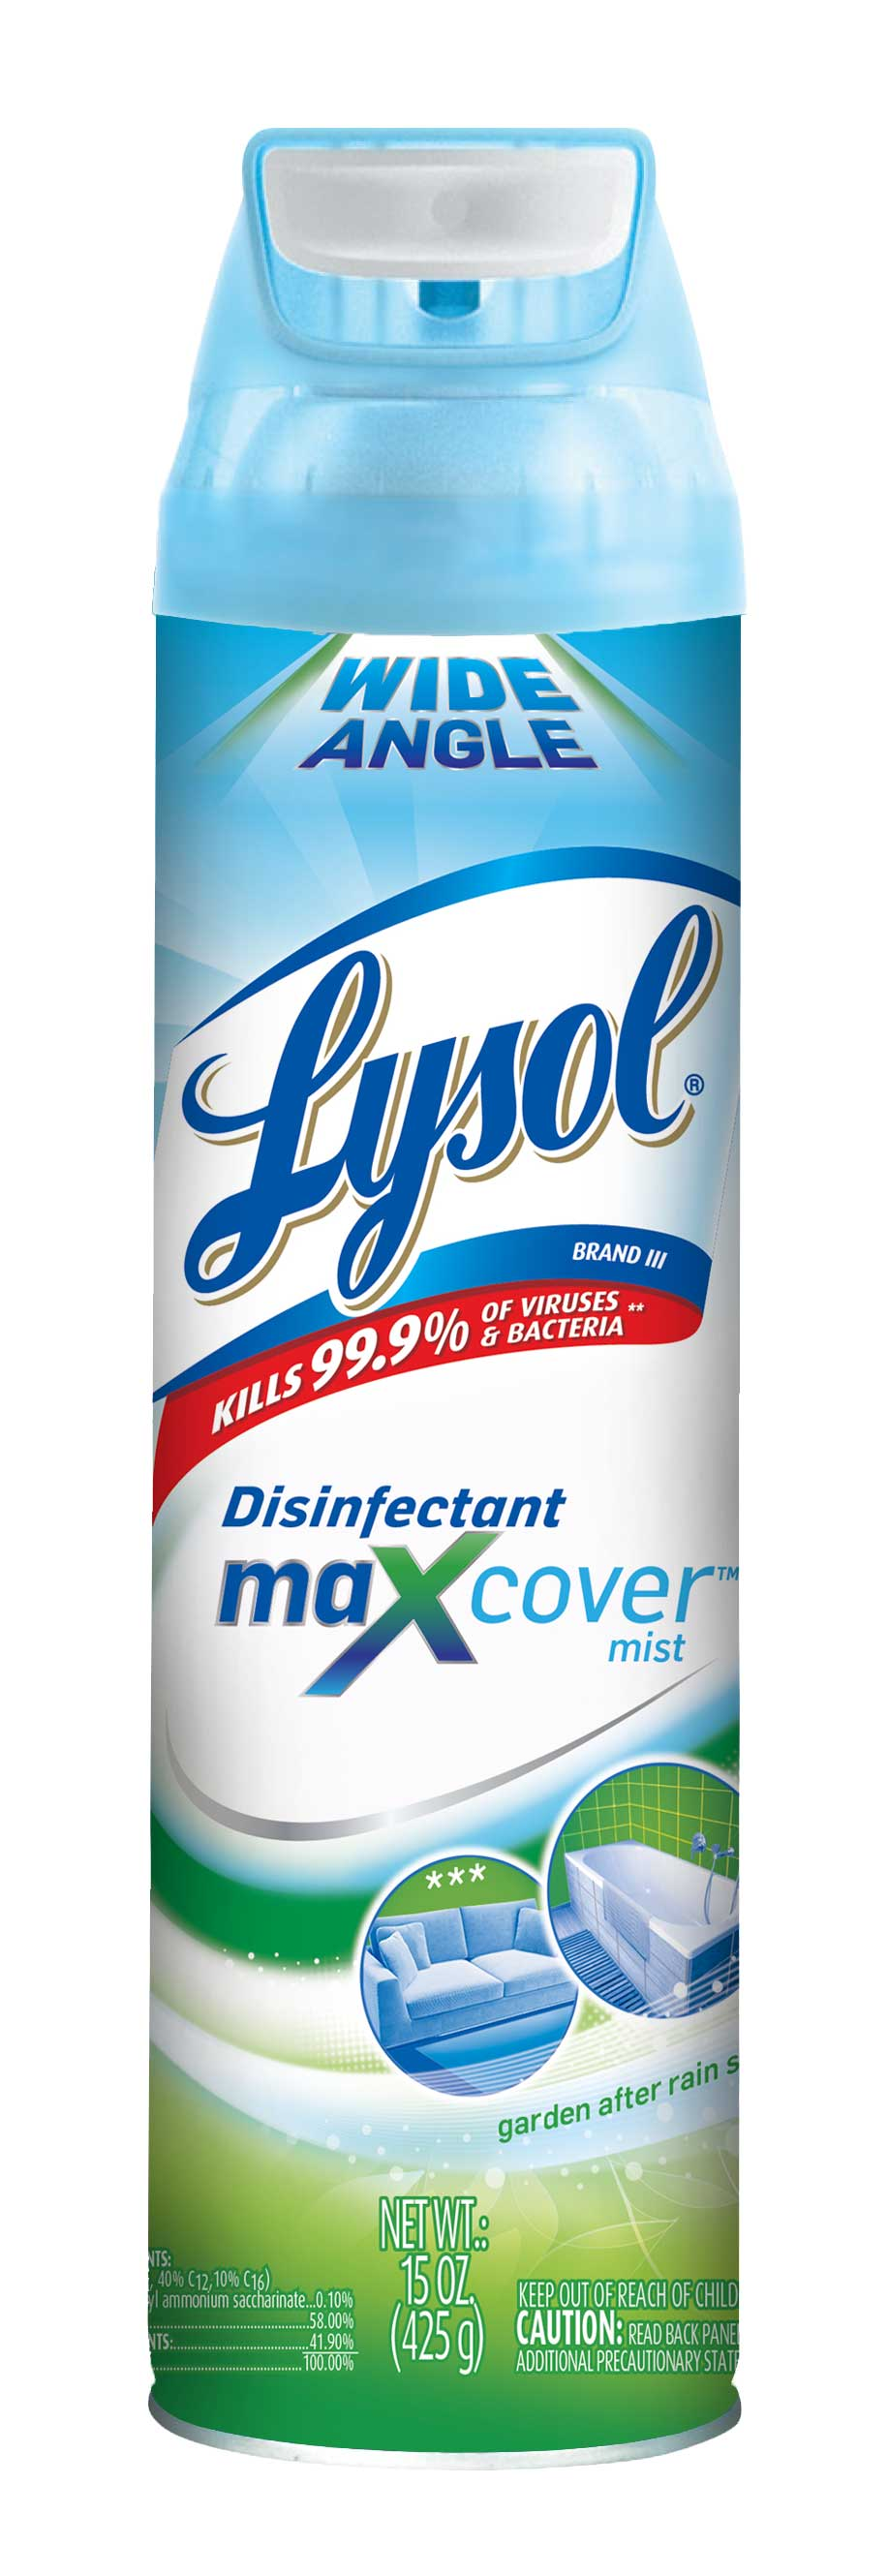 Lysol Max Cover Disinfectant Mist, Garden After Rain, 15oz, 2X Wider Coverage